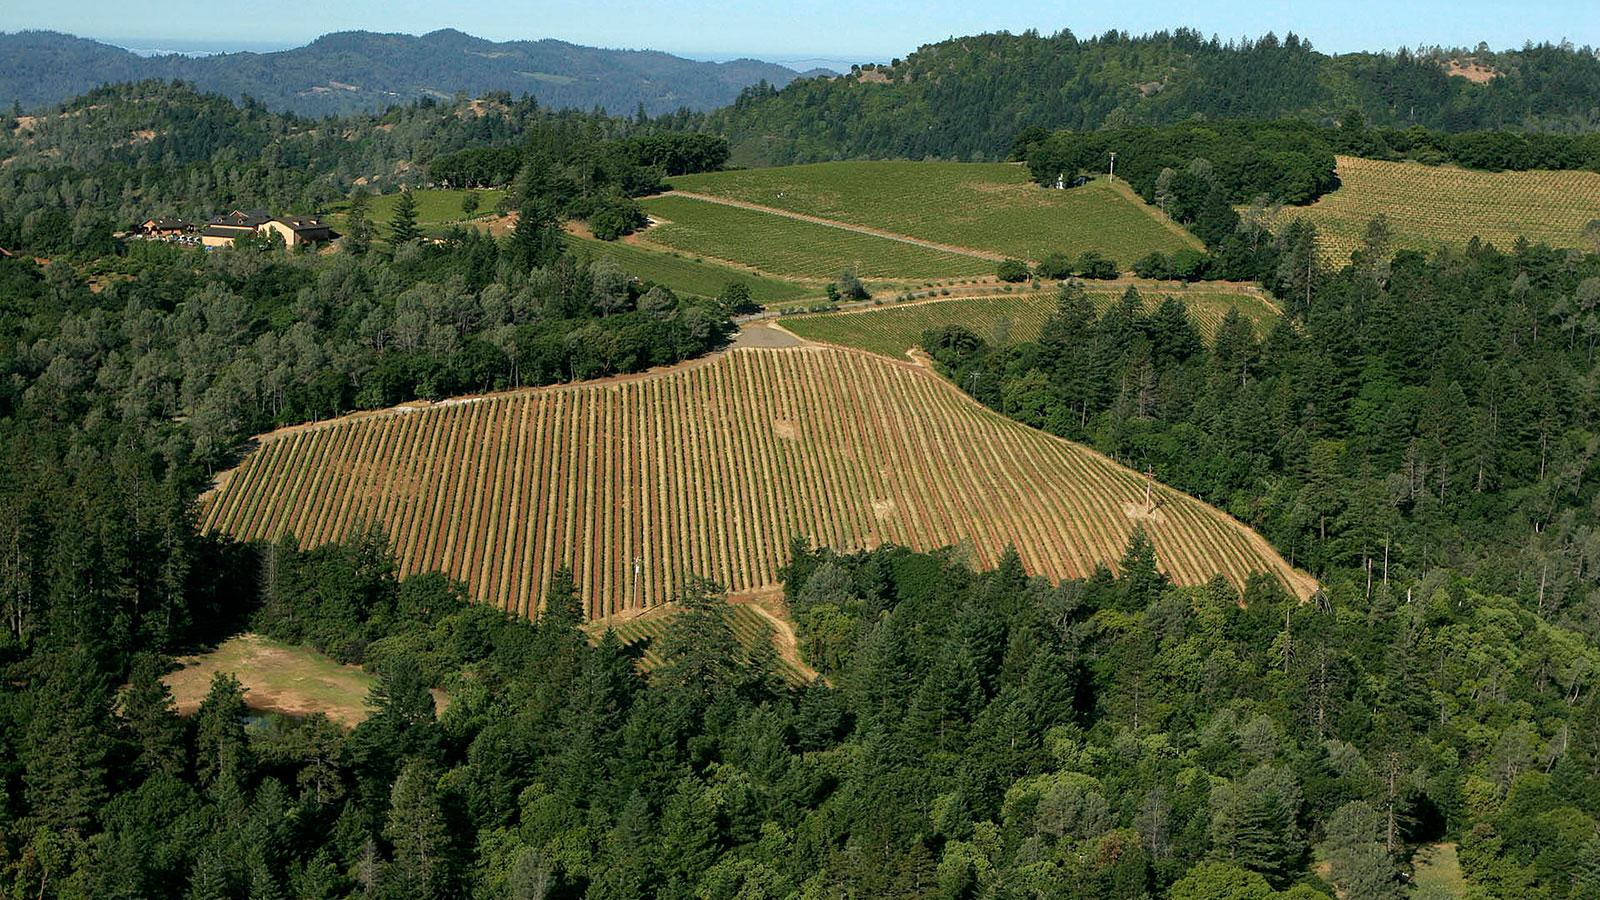 Turley's Dragon Vineyard on Howell Mountain includes a parcel planted to Cabernet Sauvignon.